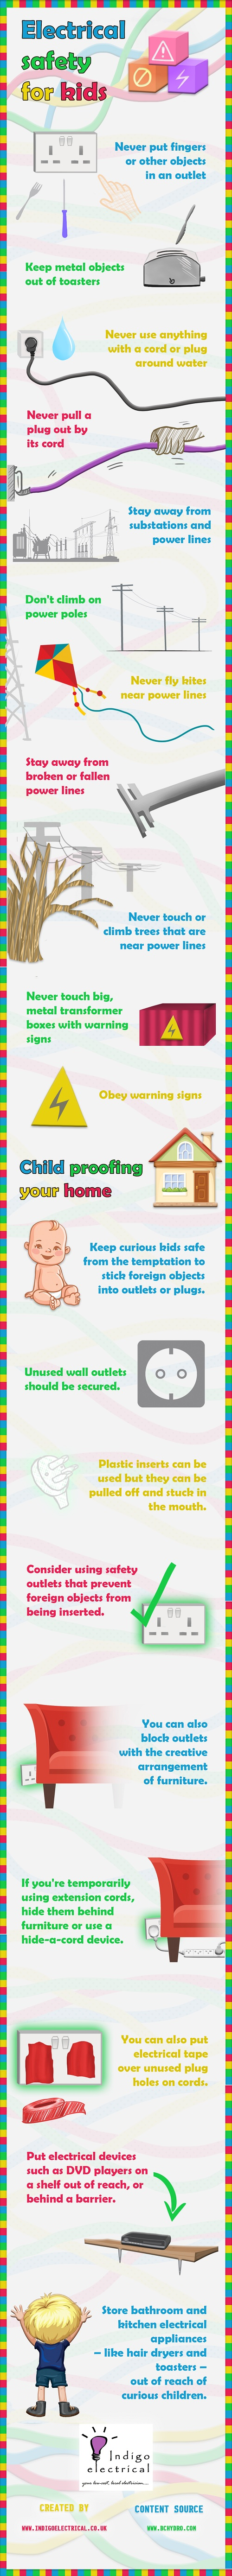 20 Electrical Safety Tips for Kids